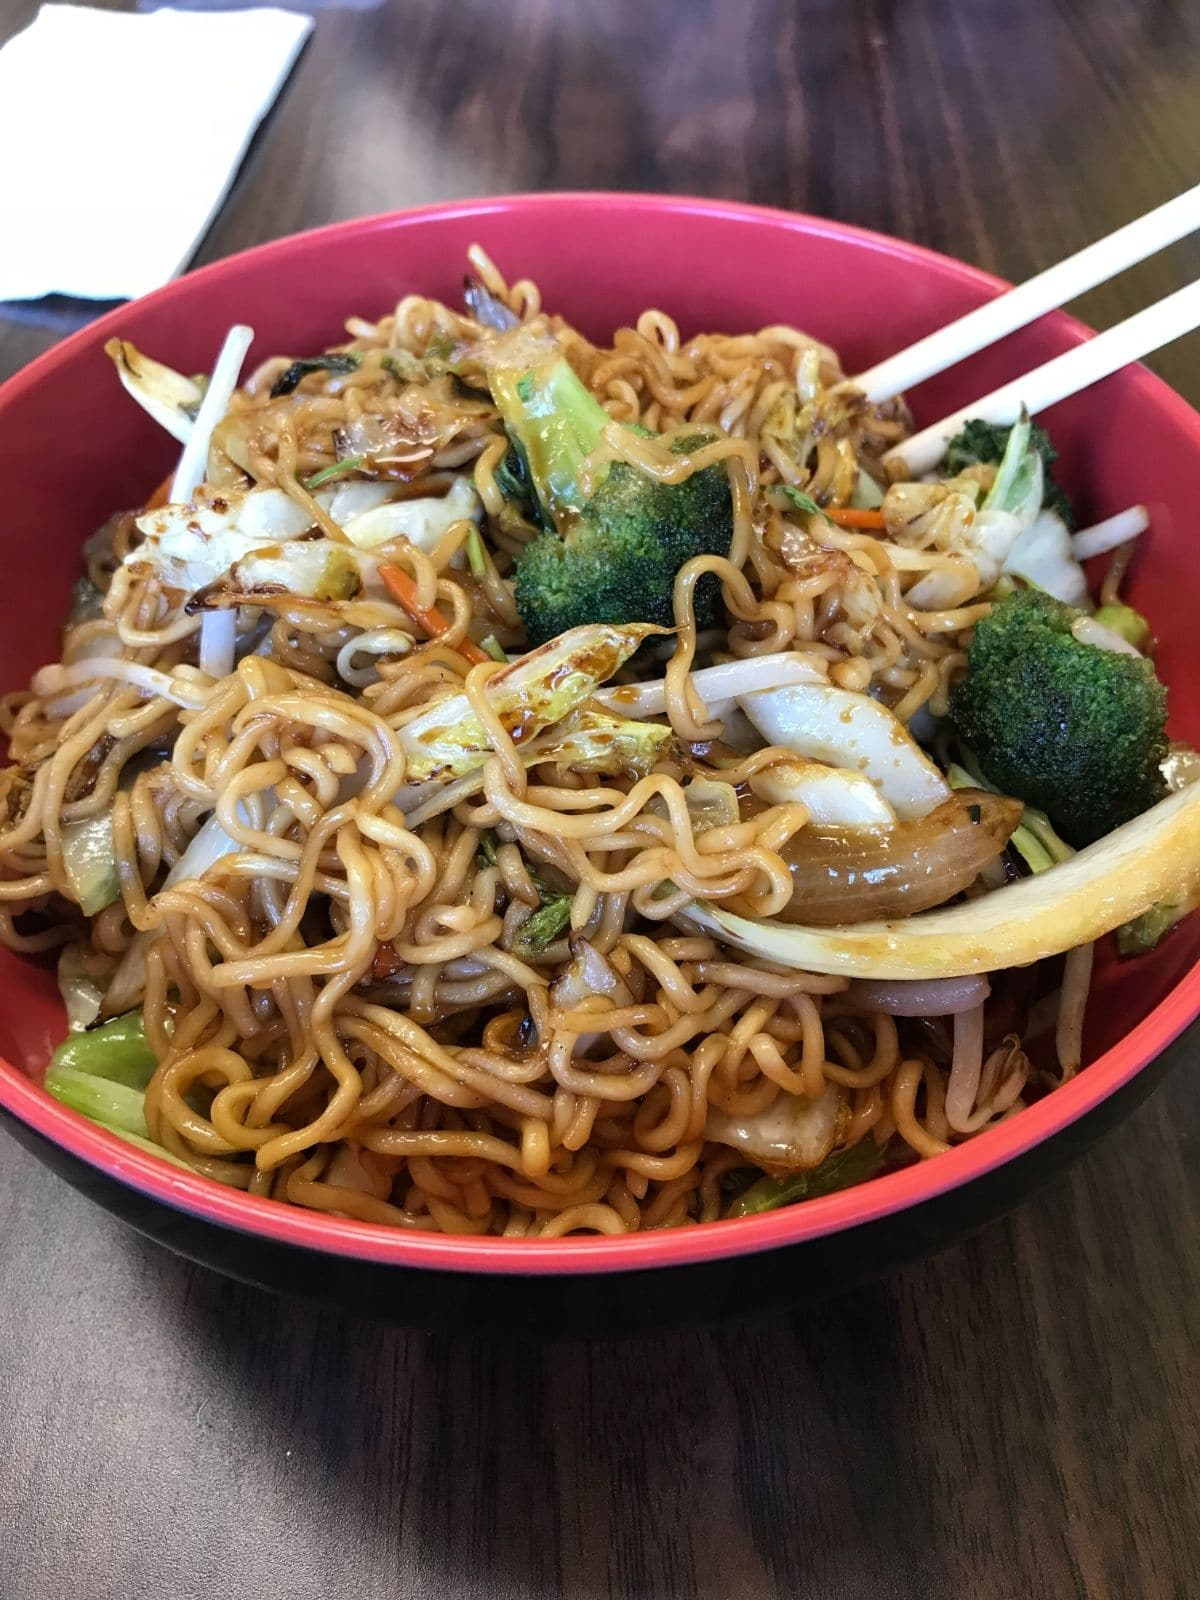 a red bowl with ramen noodles, broccoli, cabbage, onions, carrots, and chopsticks